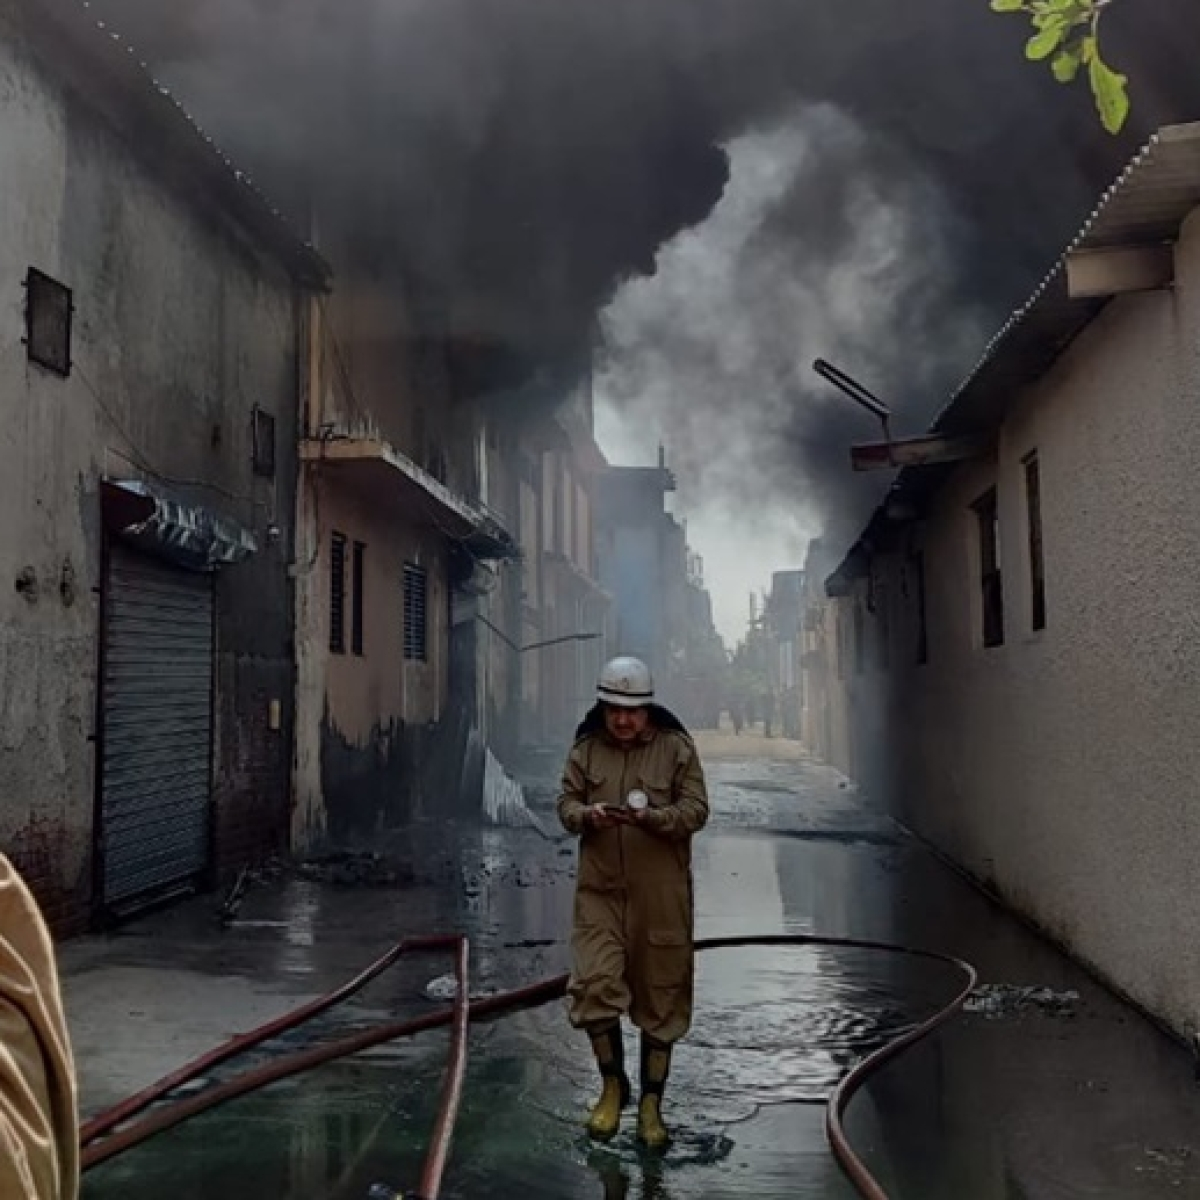 Atleast six people feared missing, 31 fire tenders rushed to spot after fire breaks out in Delhi's Udyog Nagar